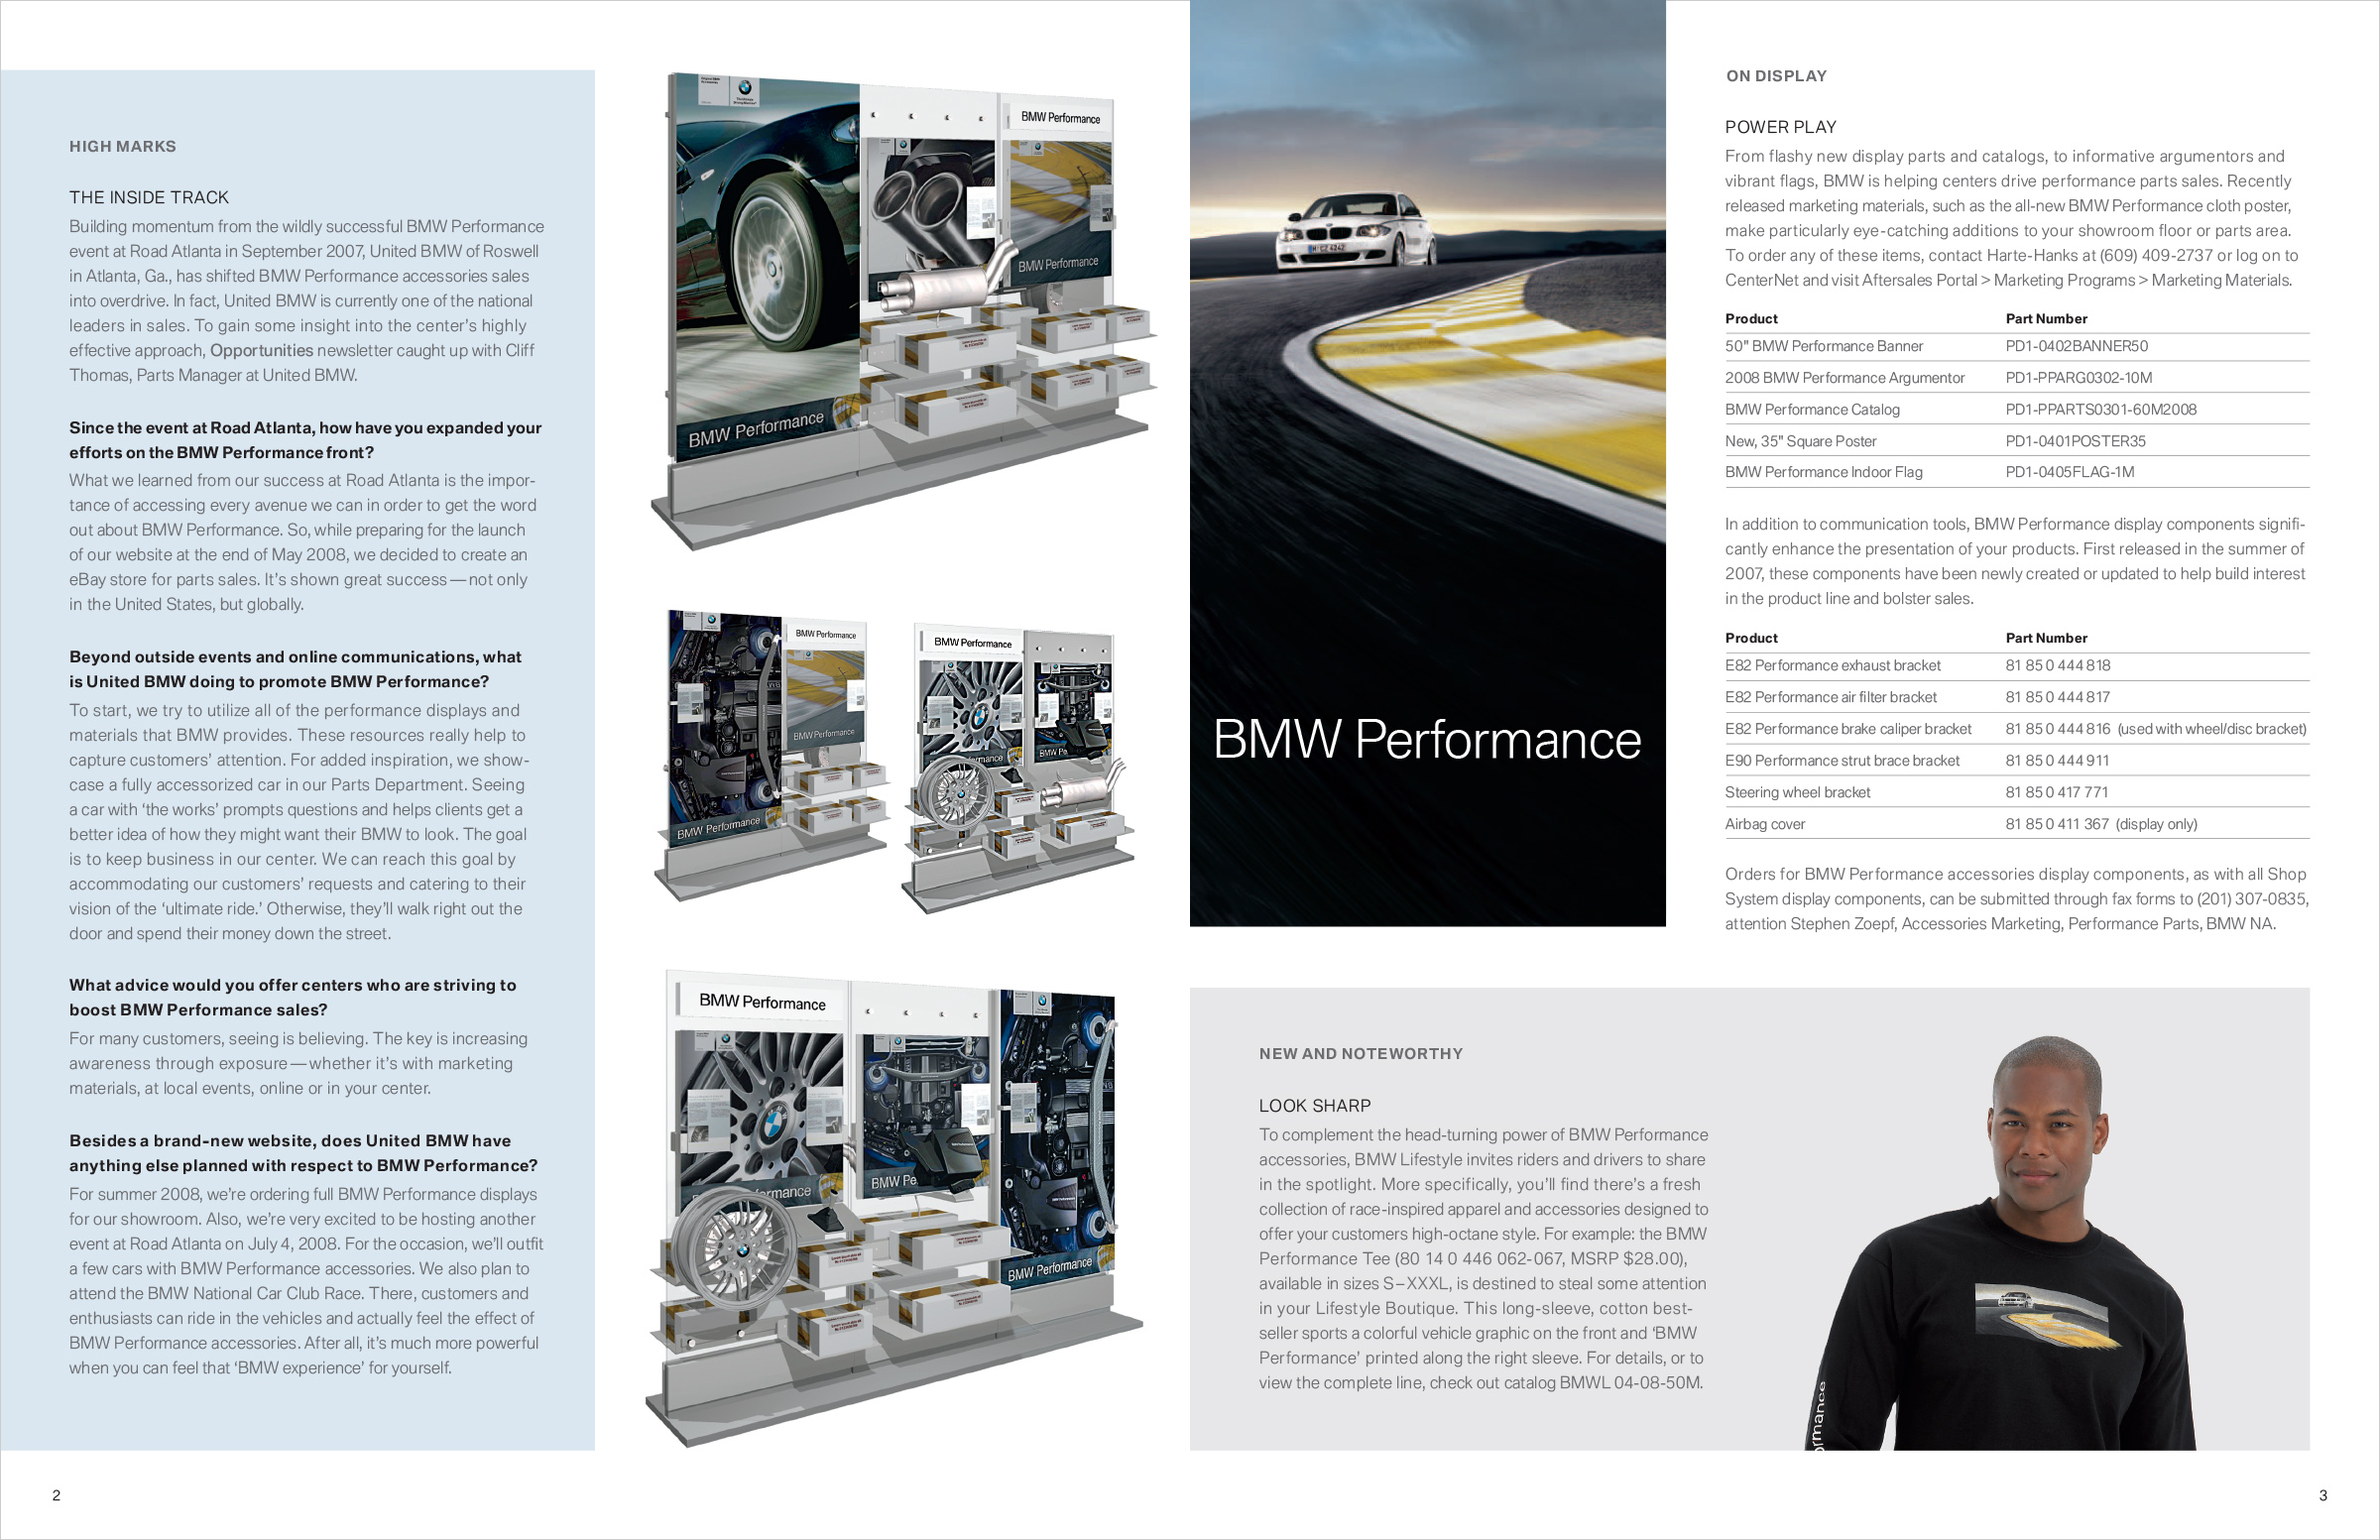 bmw179_issue18_22-2.jpg